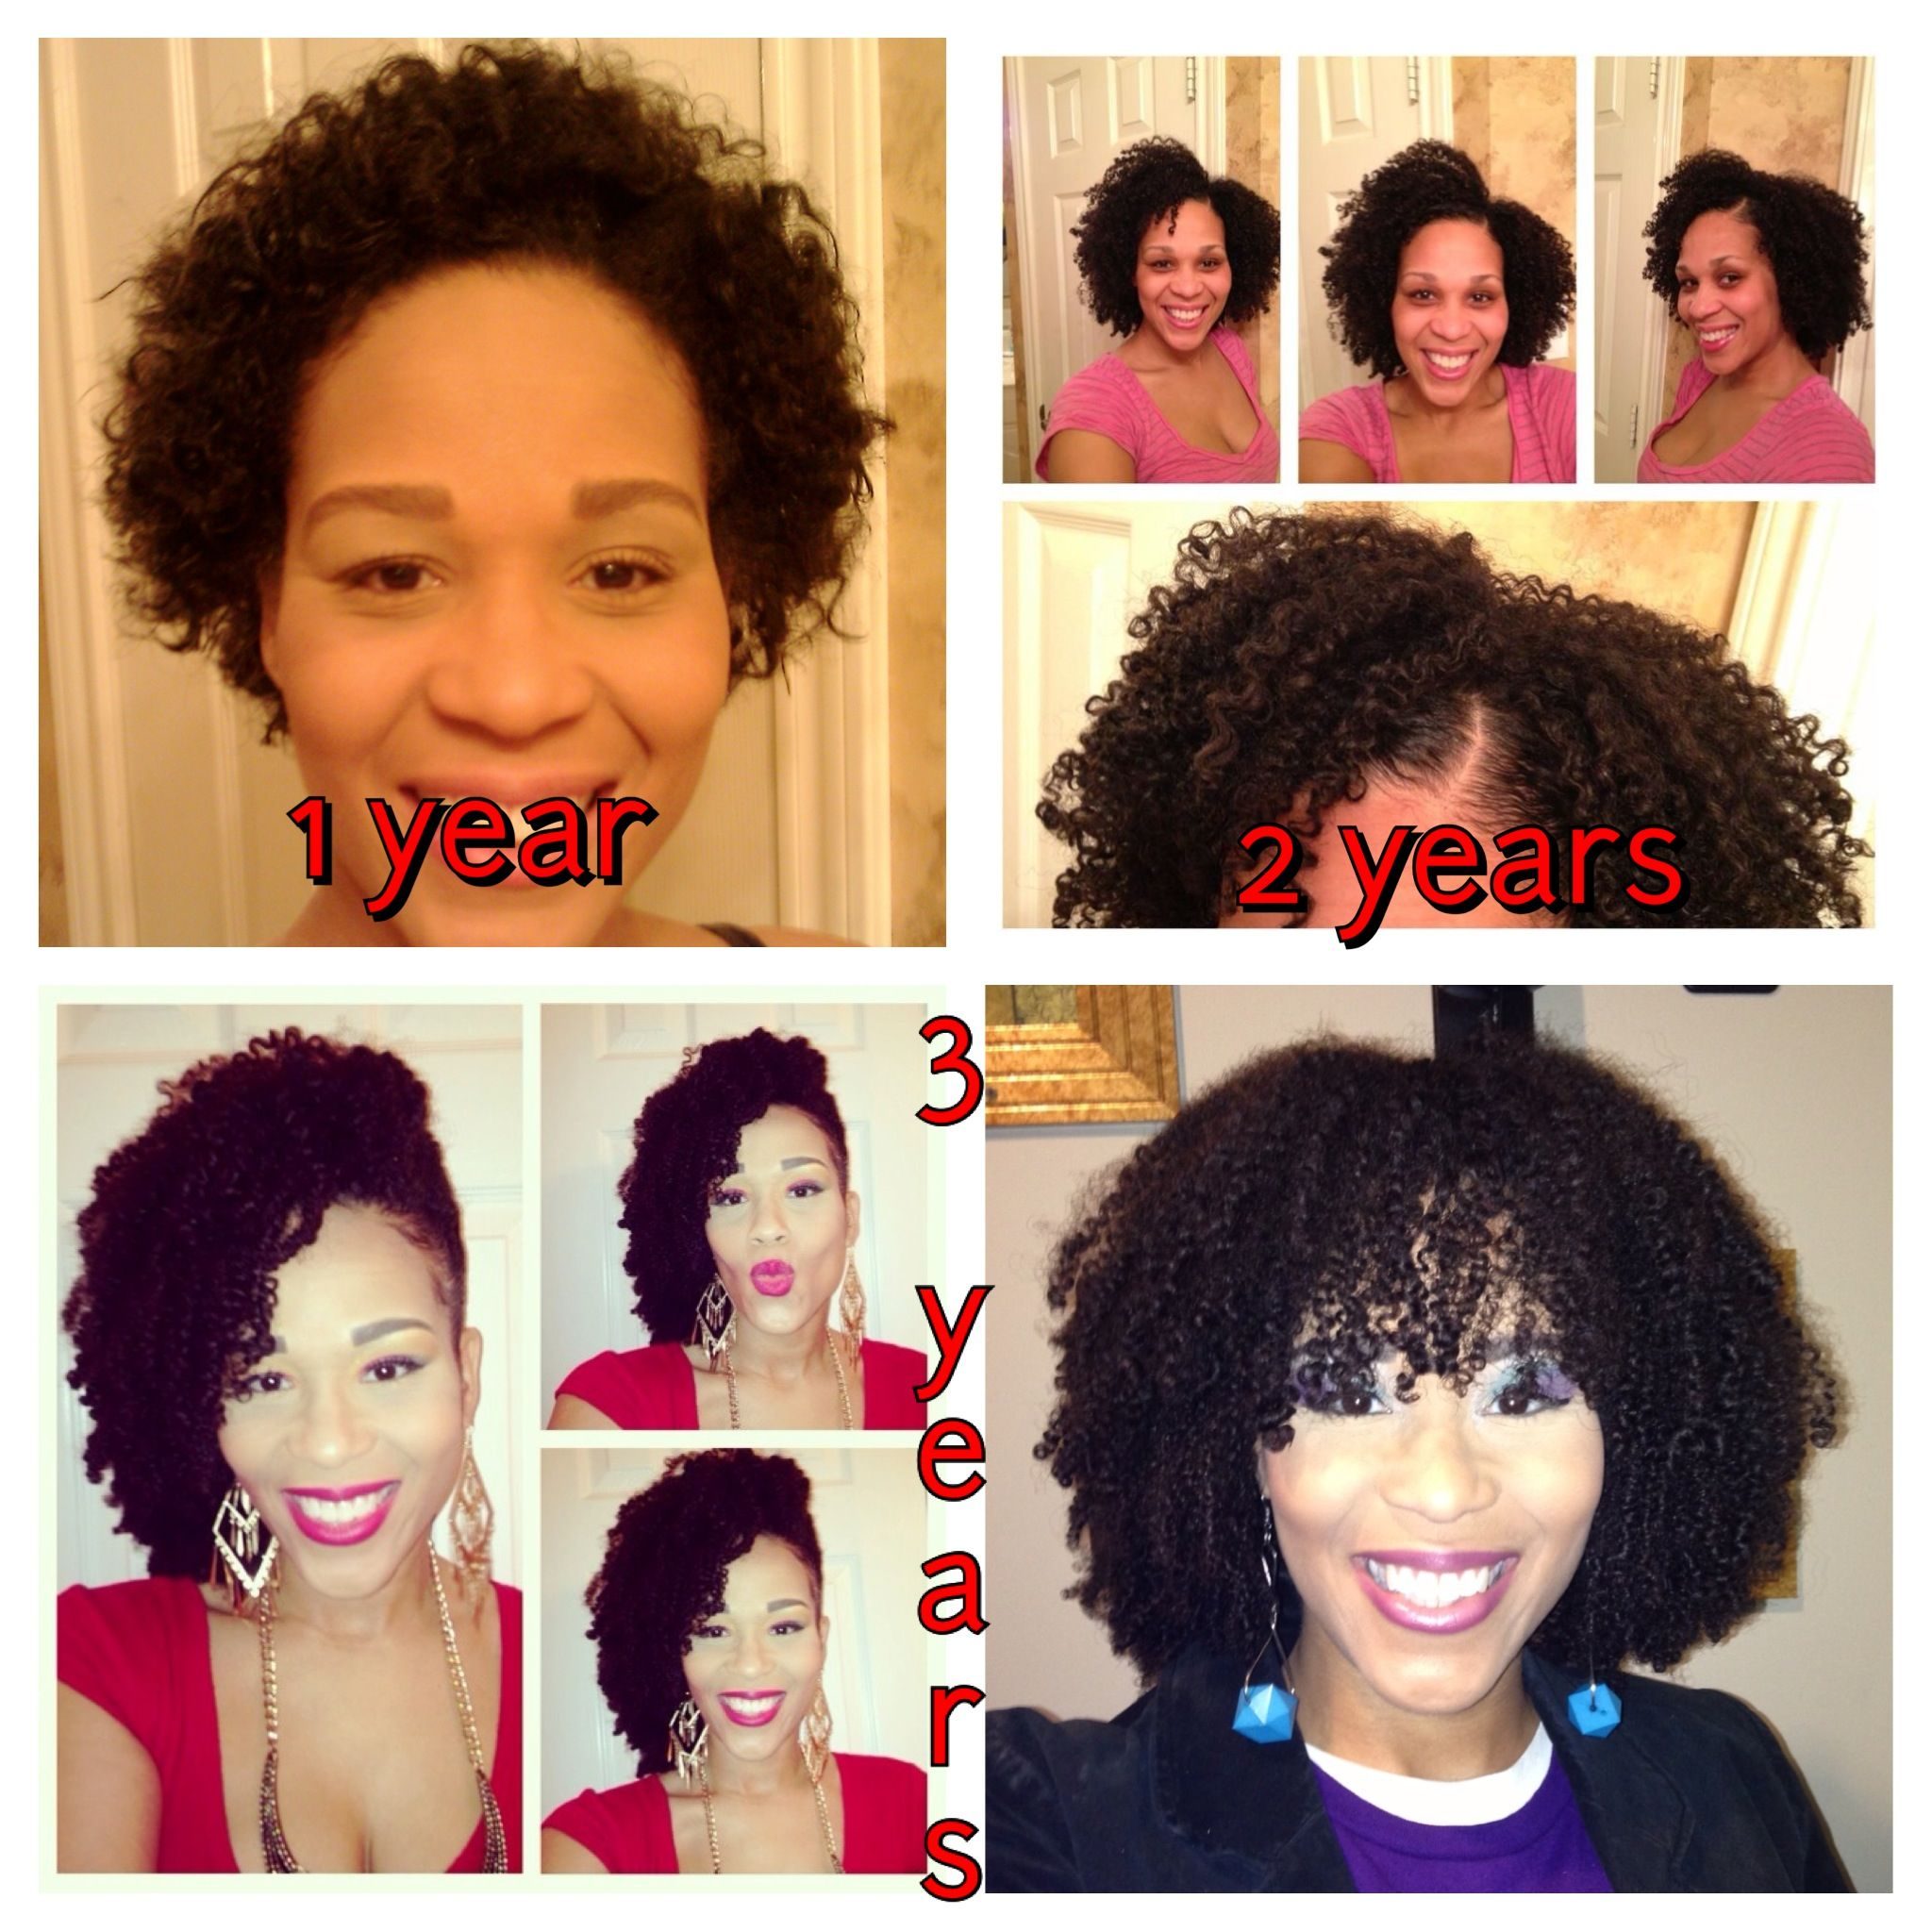 Pin By Tia Kirby On Tia S Natural Hair Journey Natural Hair Styles For Black Women Natural Hair Inspiration Afro Hair Journey